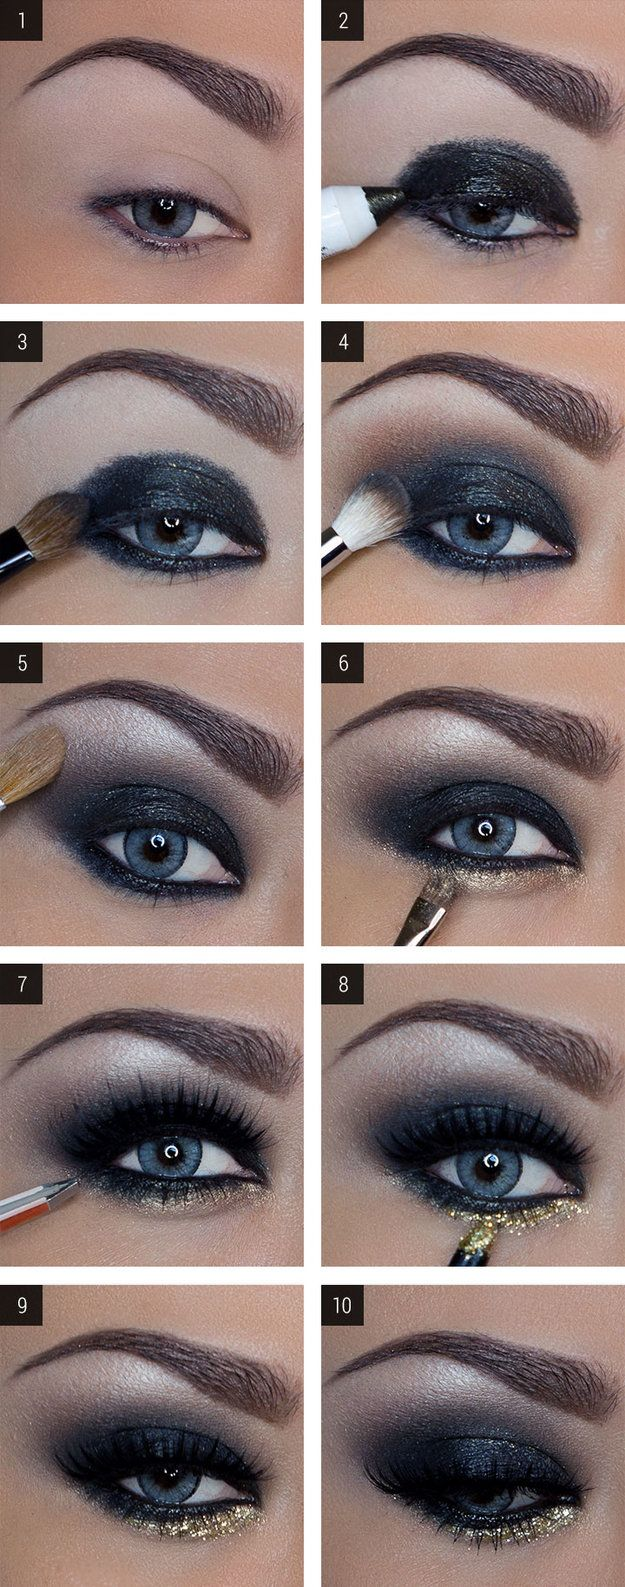 Famoso 11 Step-by-Step Makeup Tutorials For The Upcoming Fall GV48